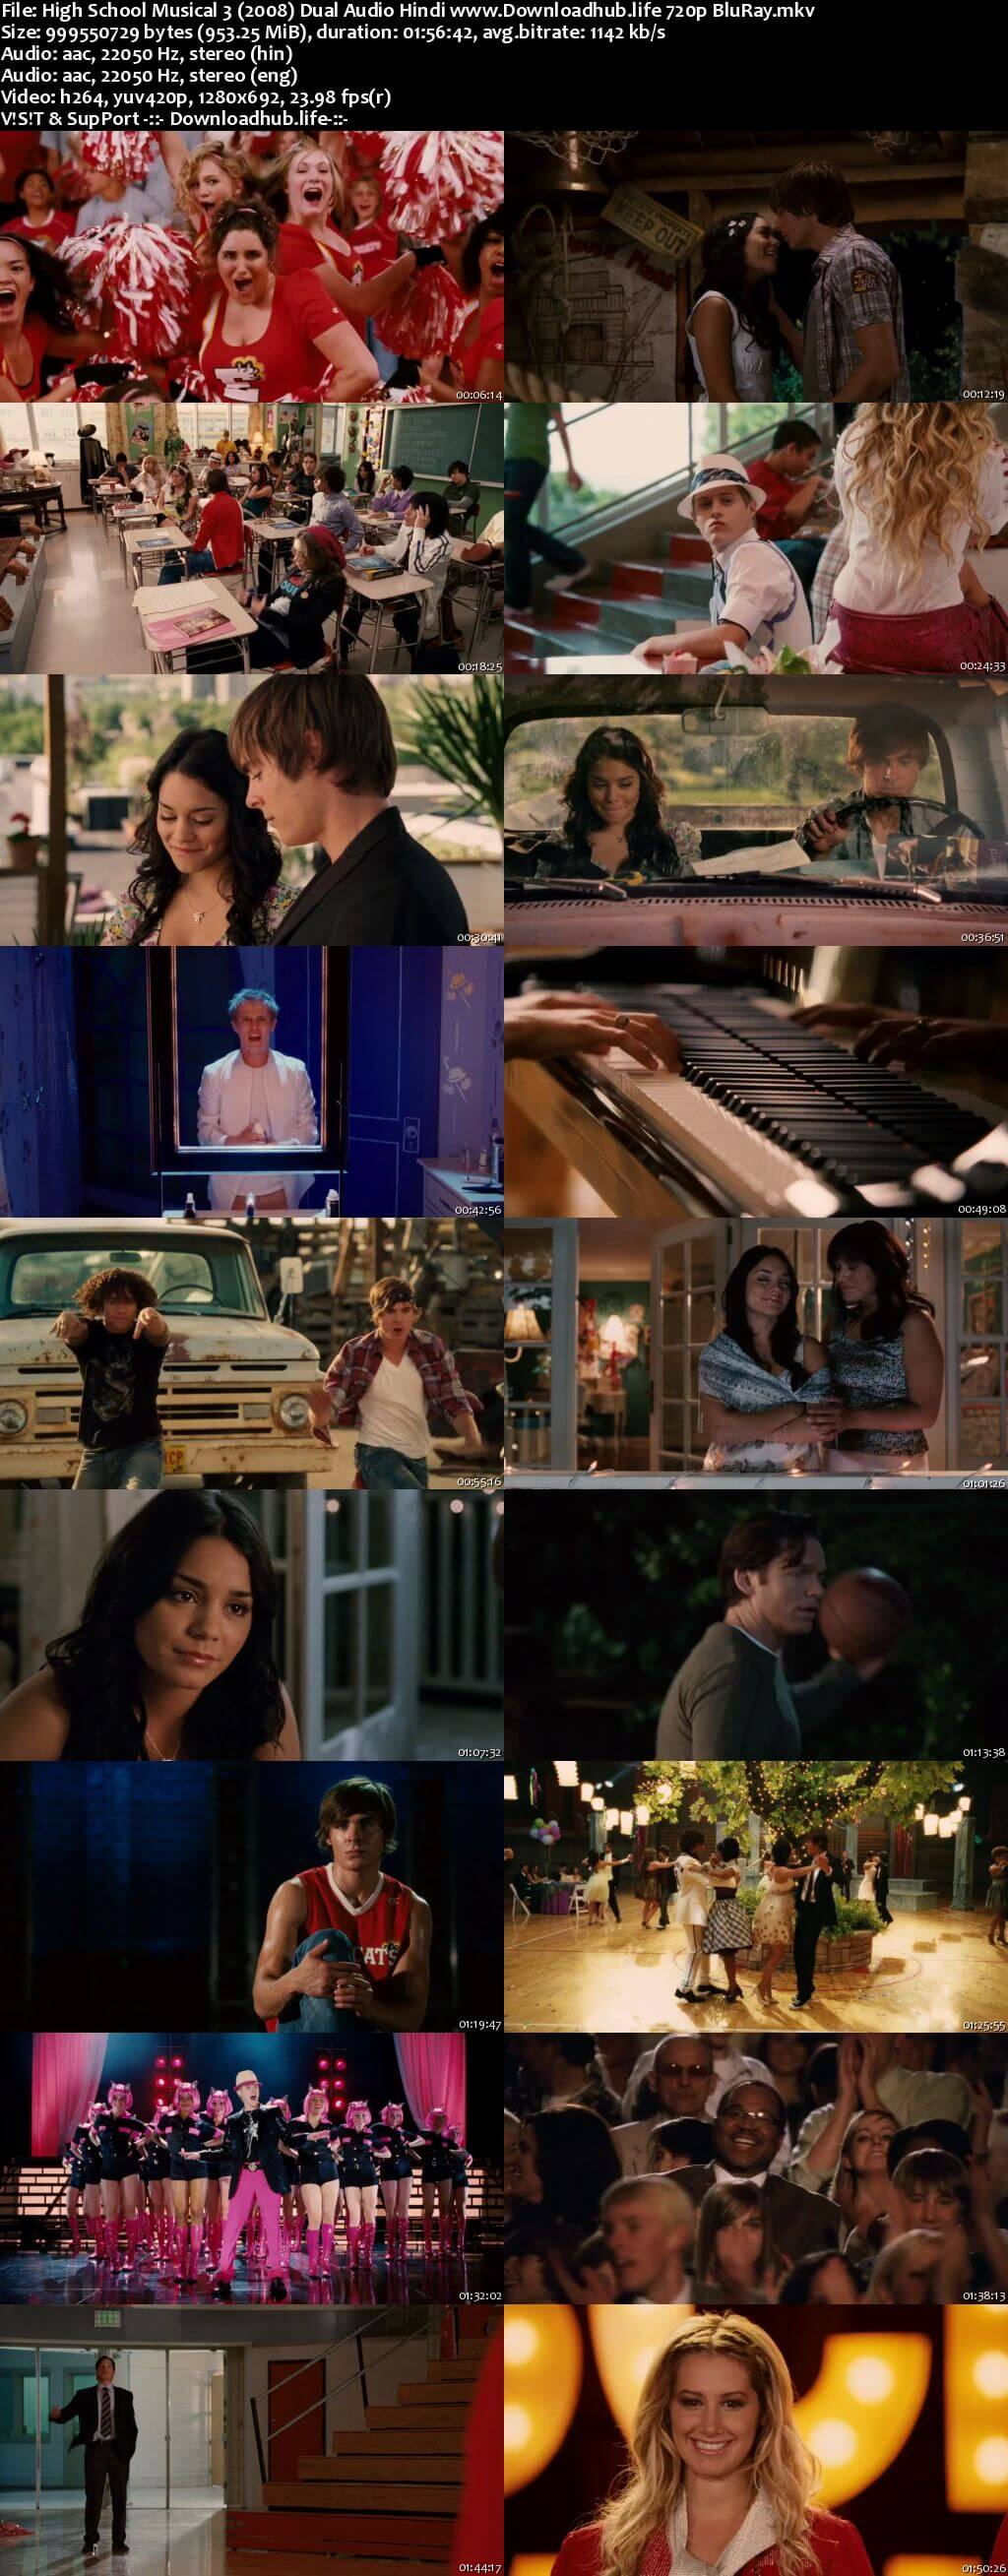 High School Musical 3 2008 Hindi Dual Audio 720p BluRay x264